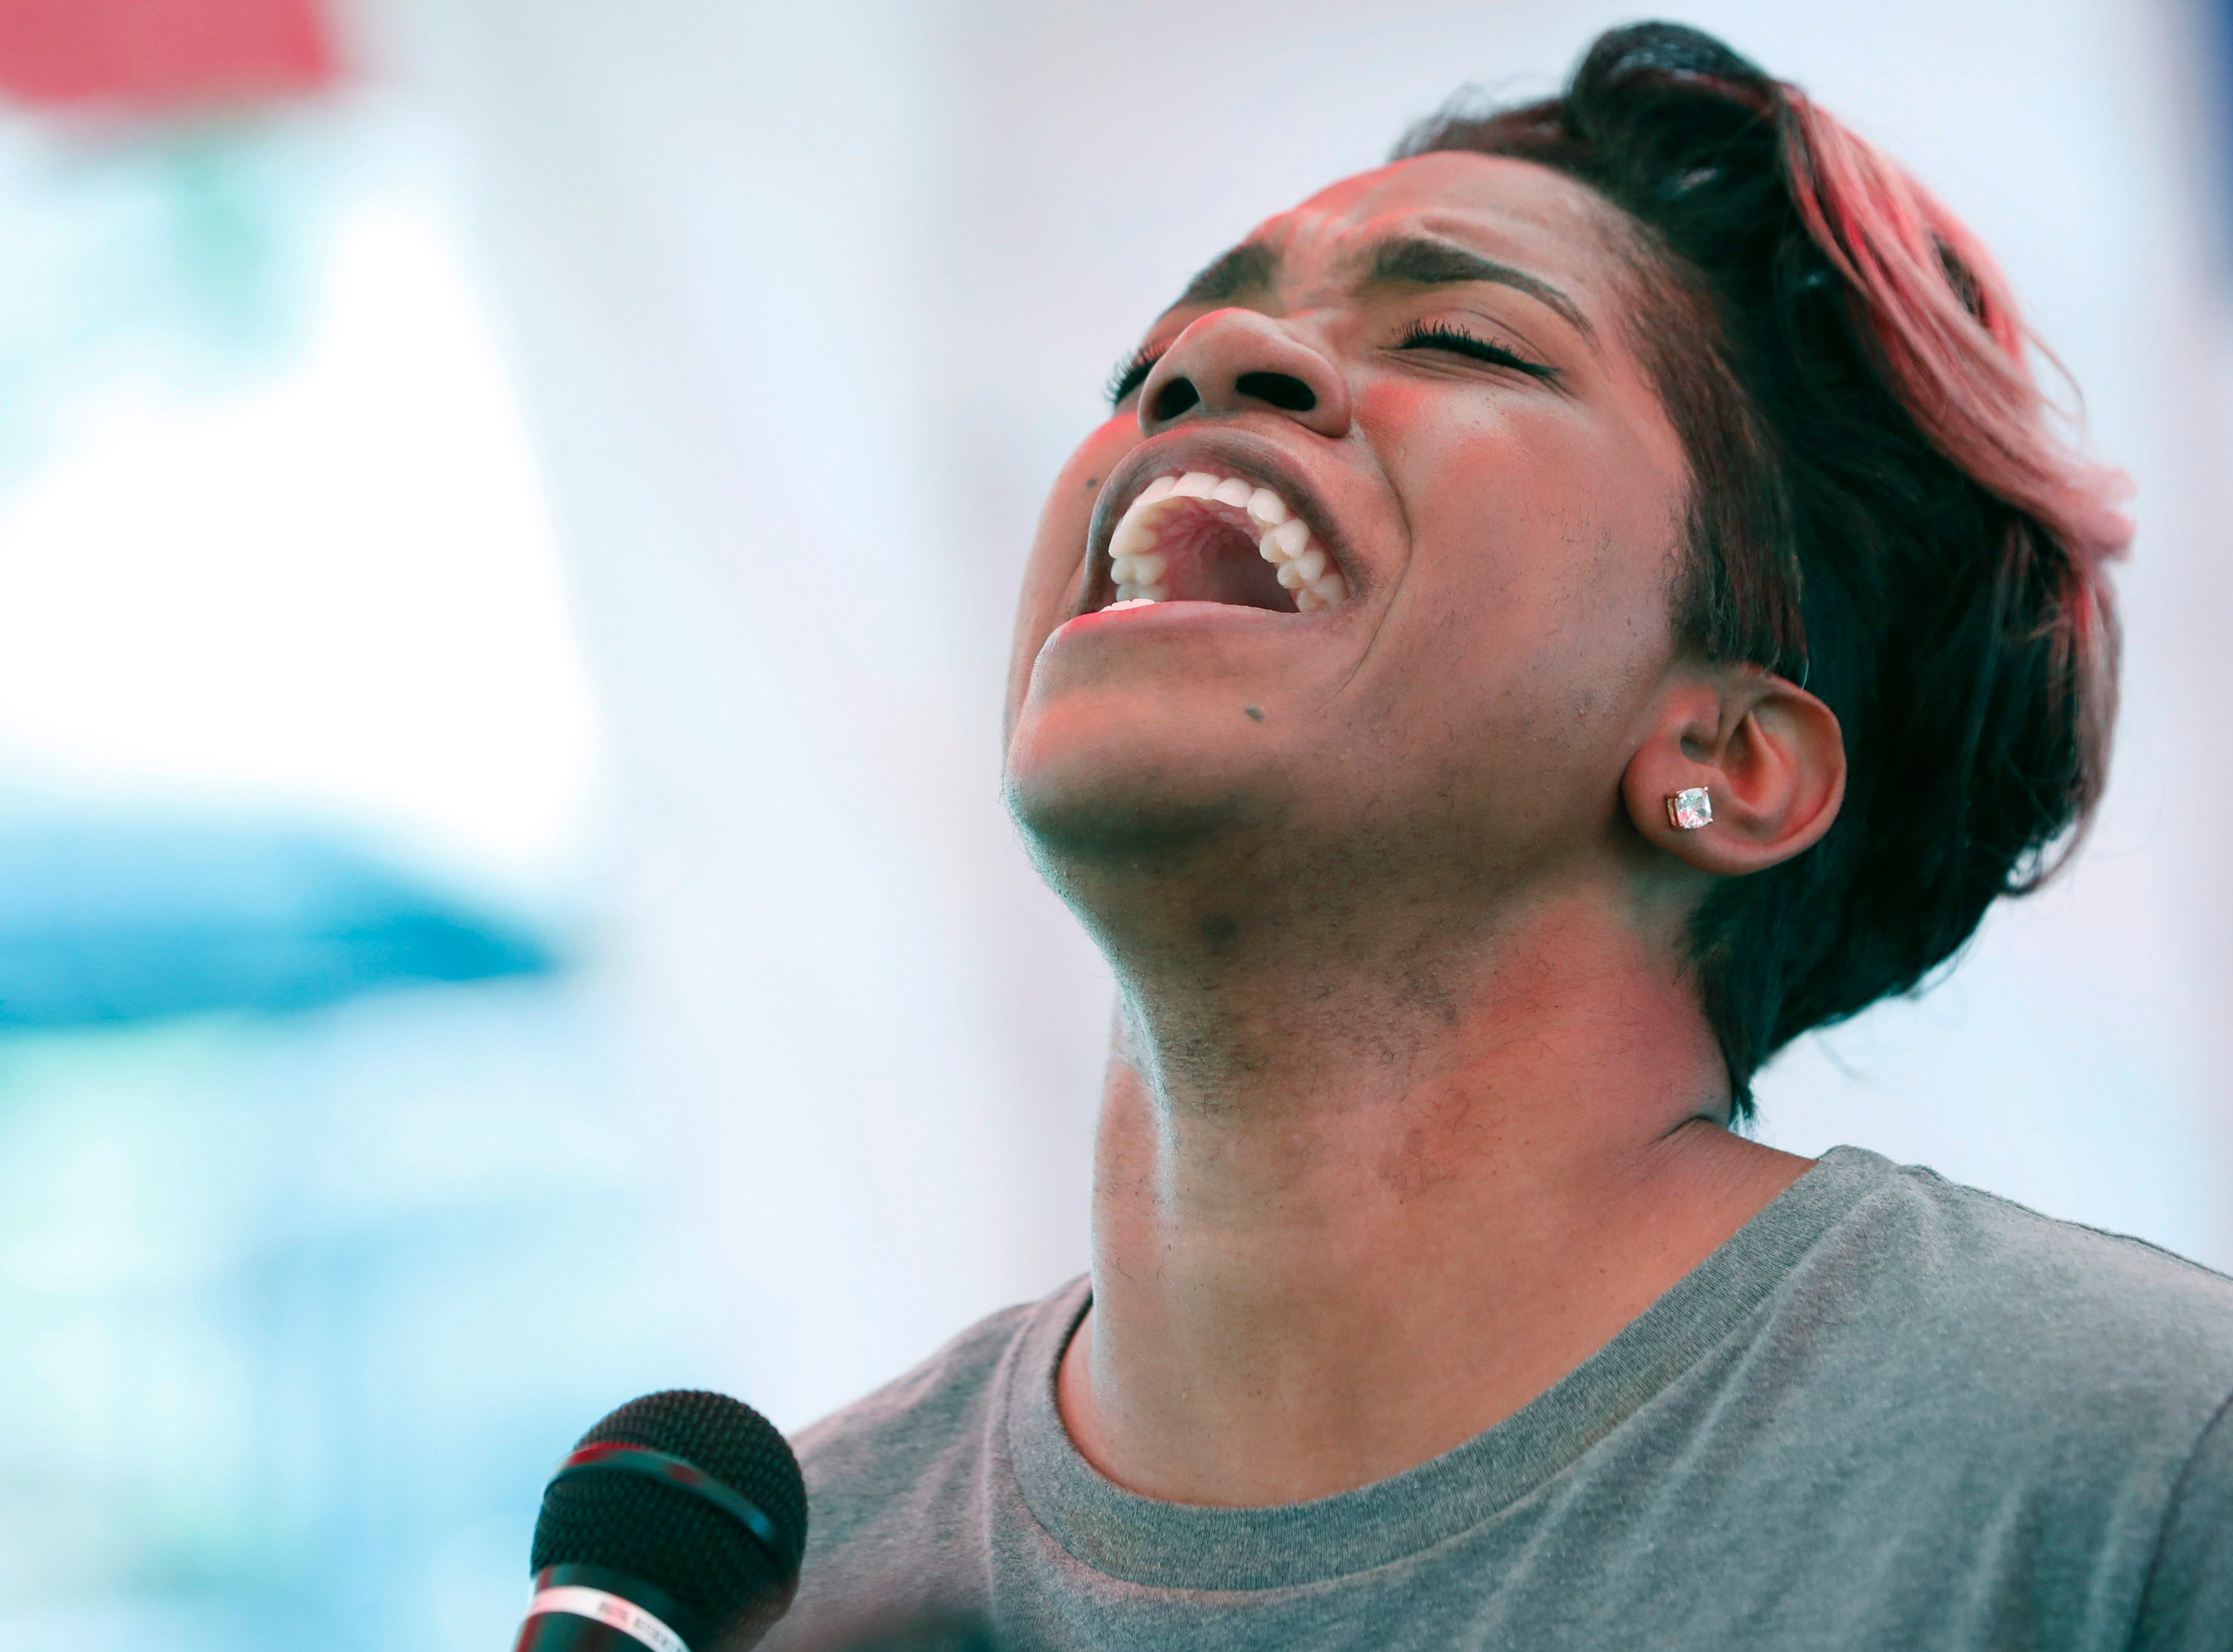 Tabitha Thompson of the Word of Life church choir in Flowood, Miss., sings about the glory of God at the state Capitol in Jackson, Miss., Thursday, May 2, 2019, during the National Day of Prayer. The annual day of observance is held on the first Thursday of May, designated by the United States Congress, and calling on all people of faith to pray for the nation and its leaders. (AP Photo/Rogelio V. Solis)